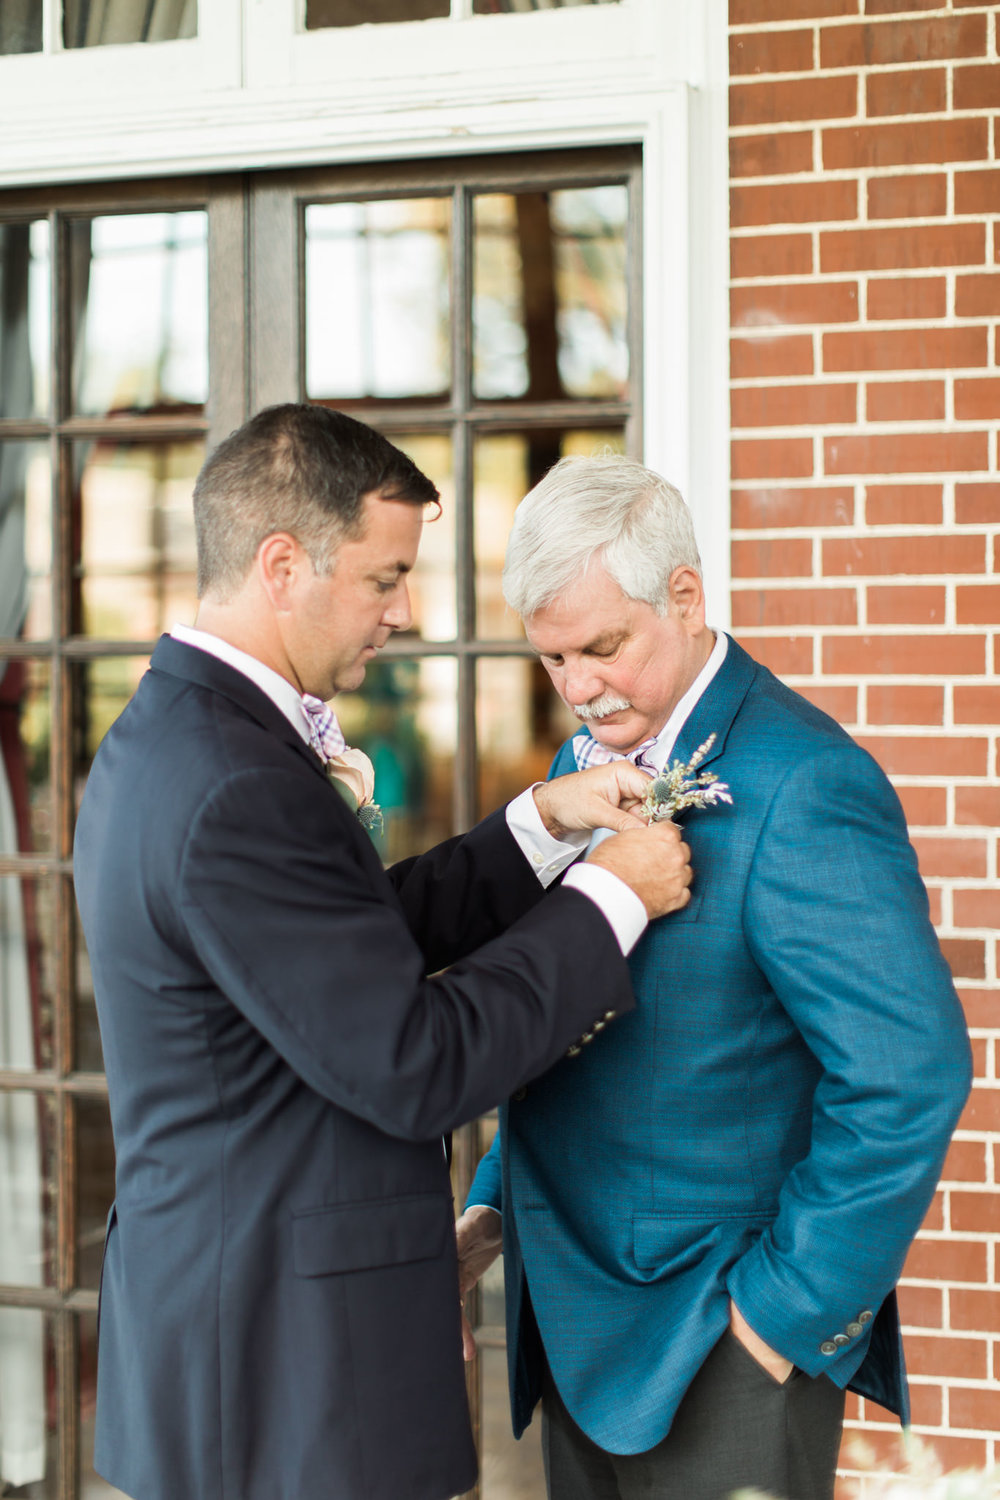 Groom pinning a boutonniere on his father